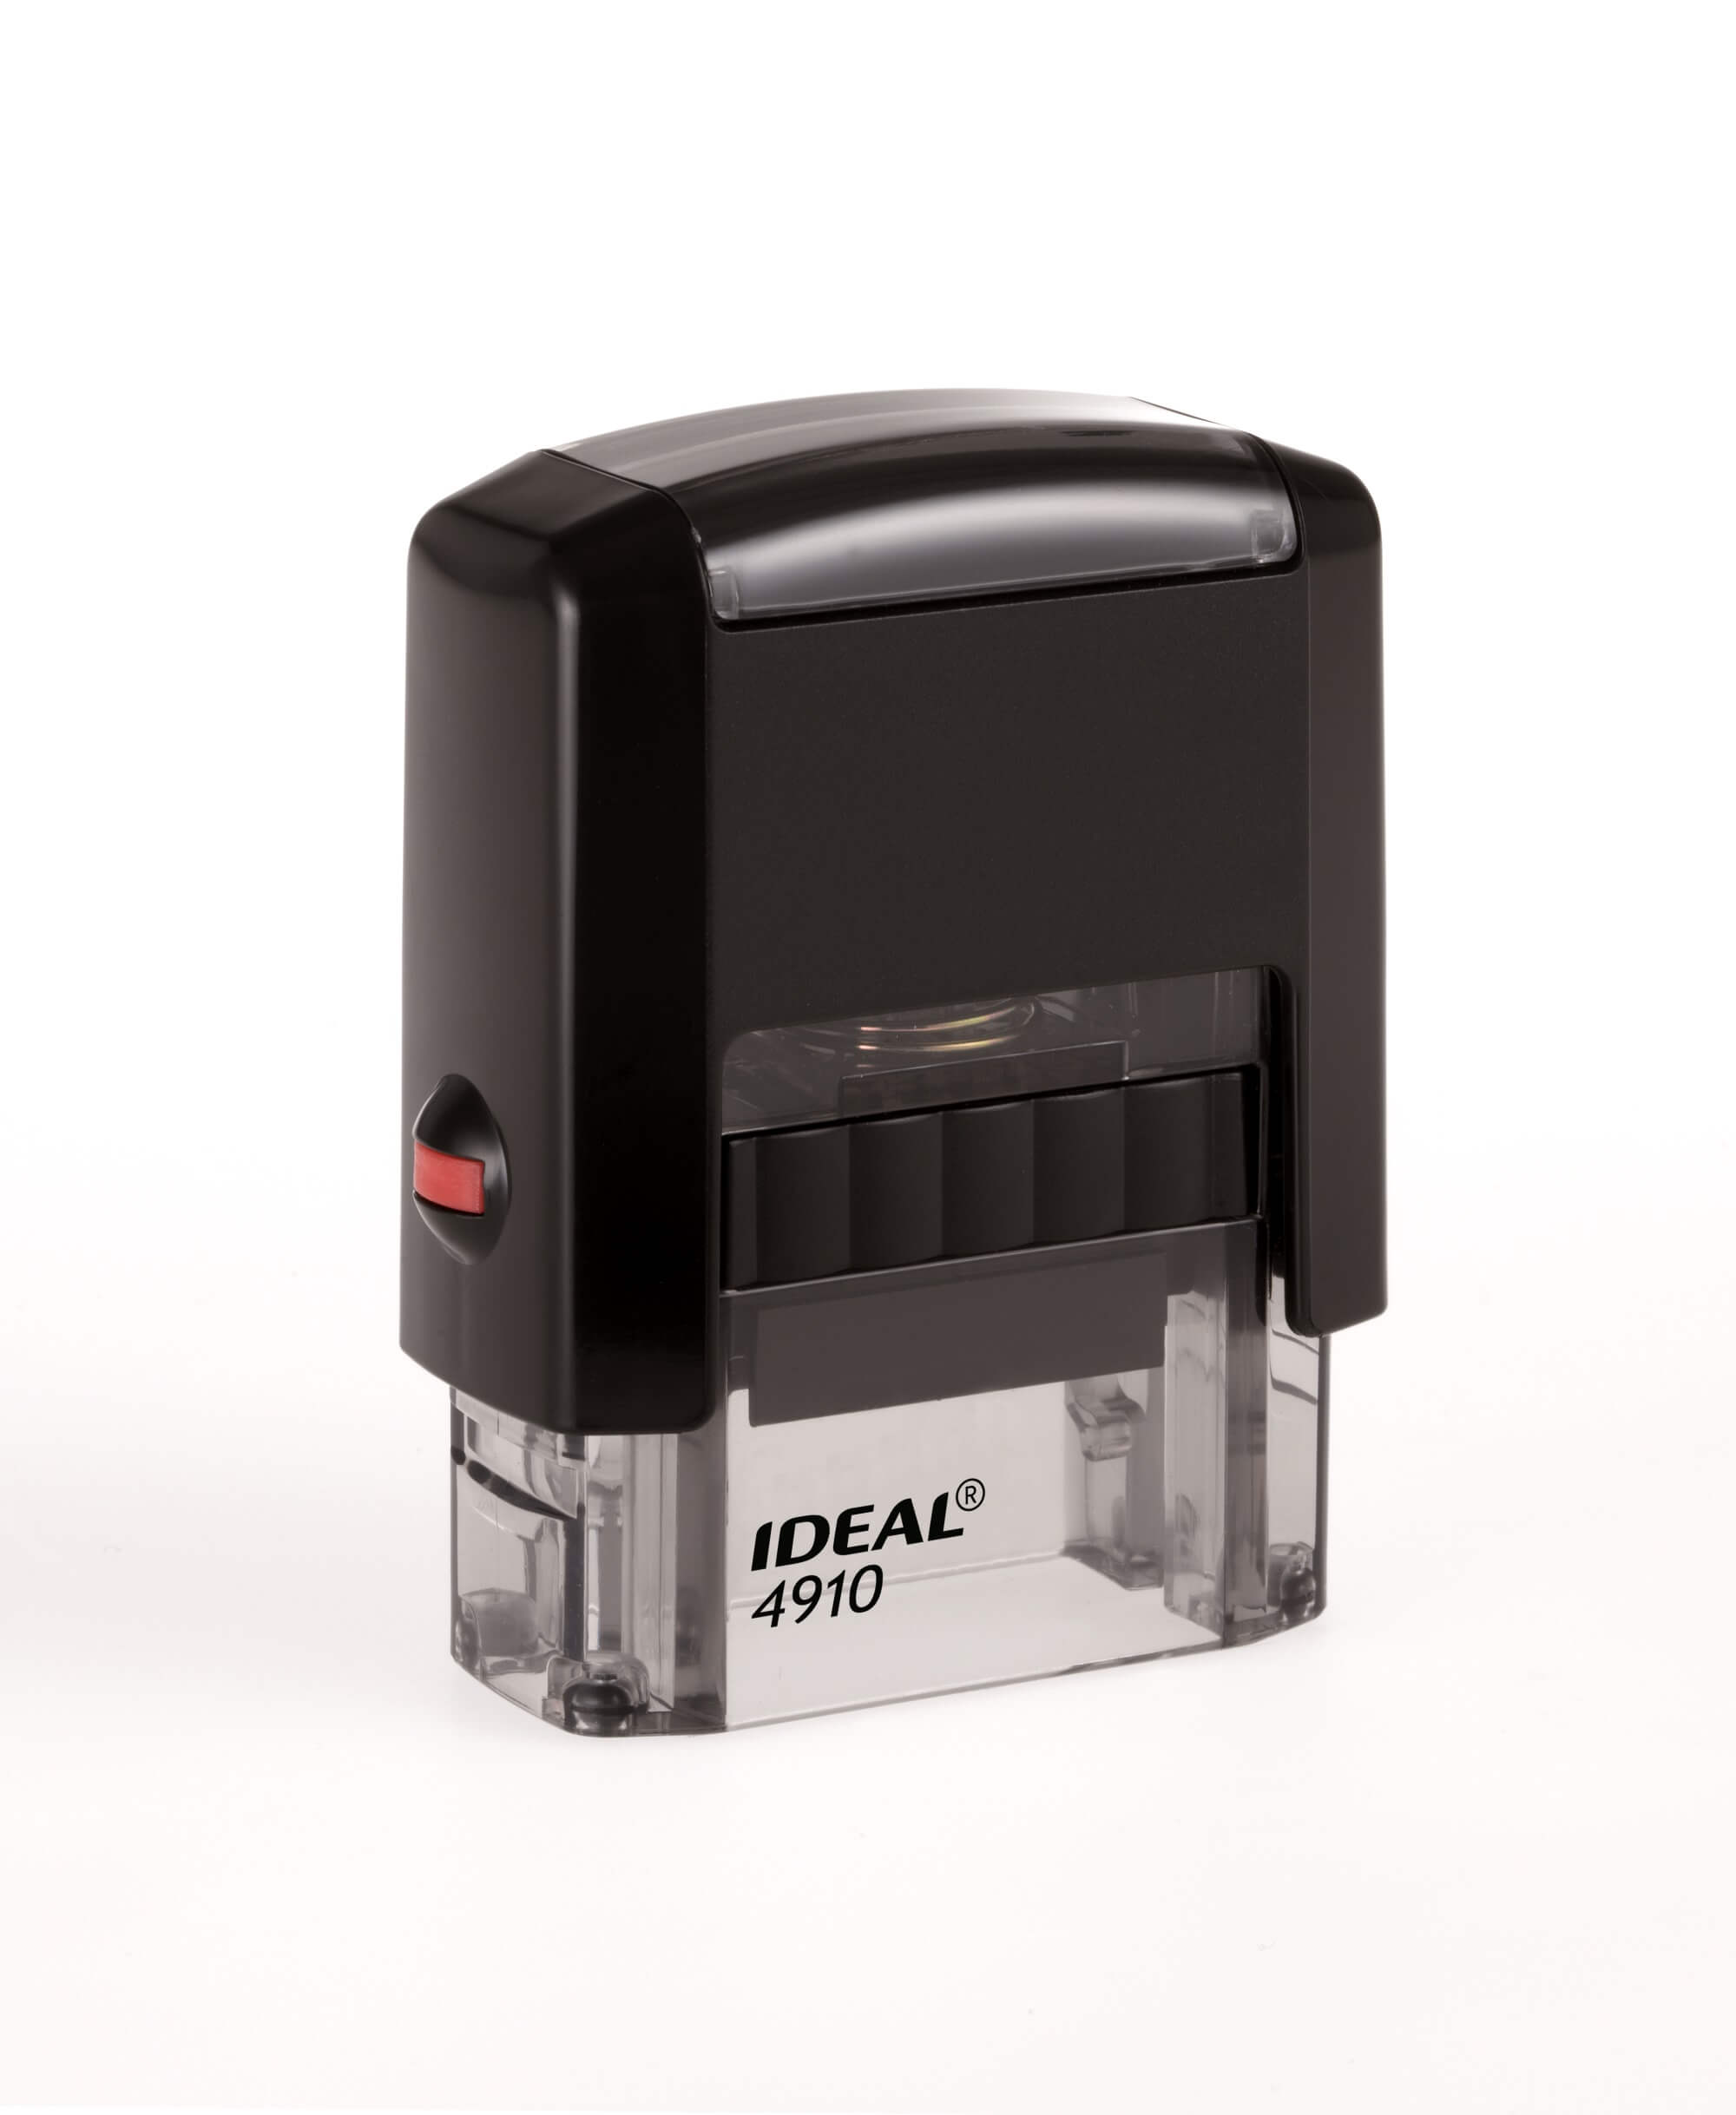 TRODAT IDEAL 4910